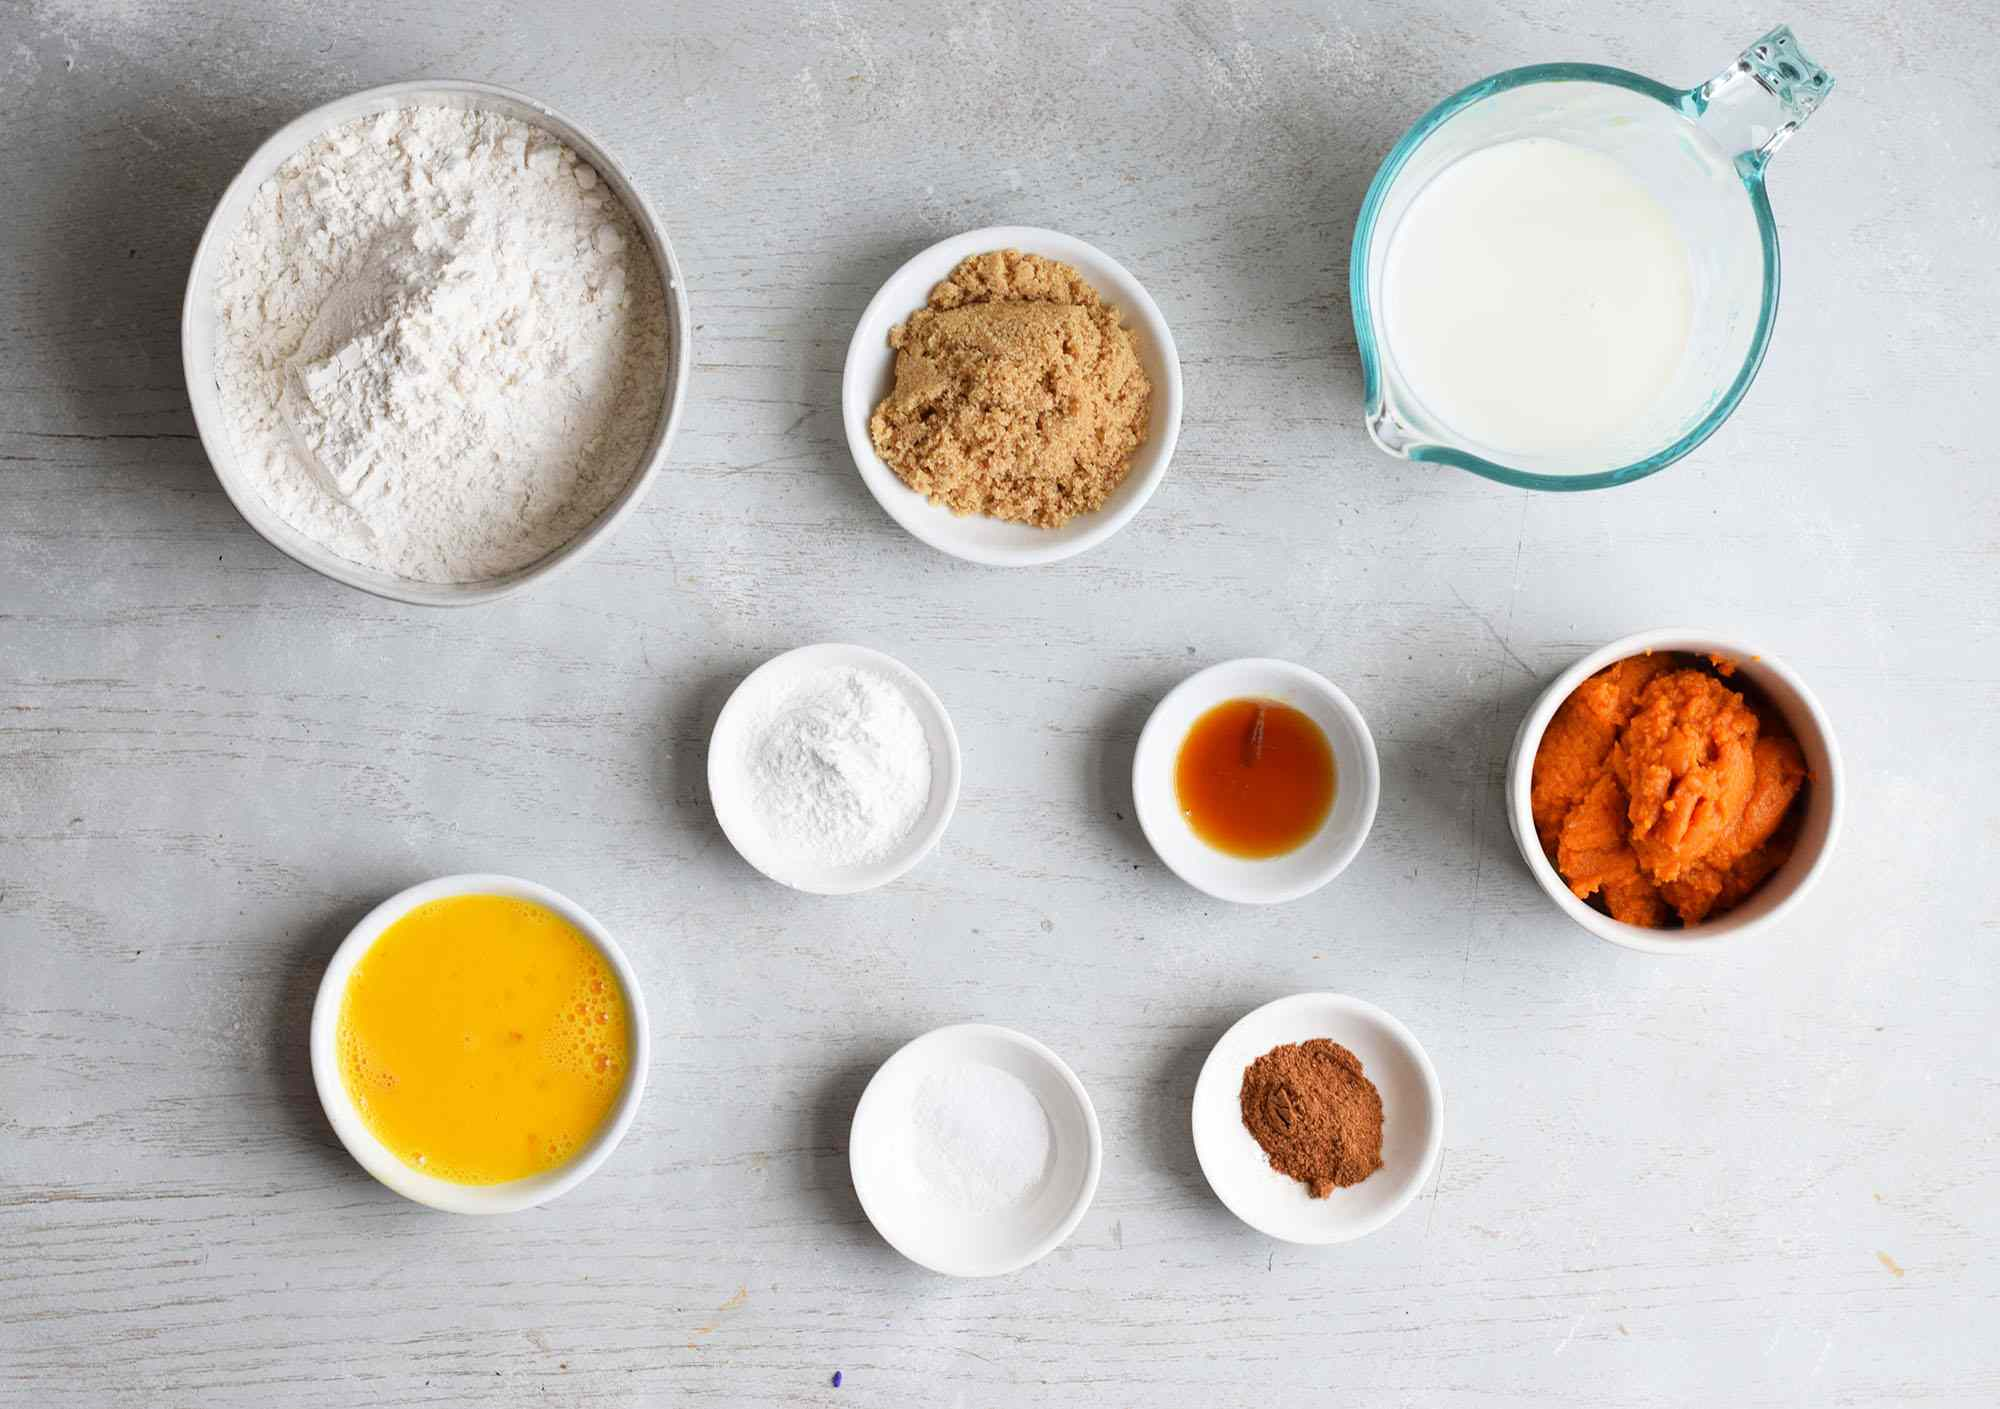 ingredients for pumpkin pancakes on a board